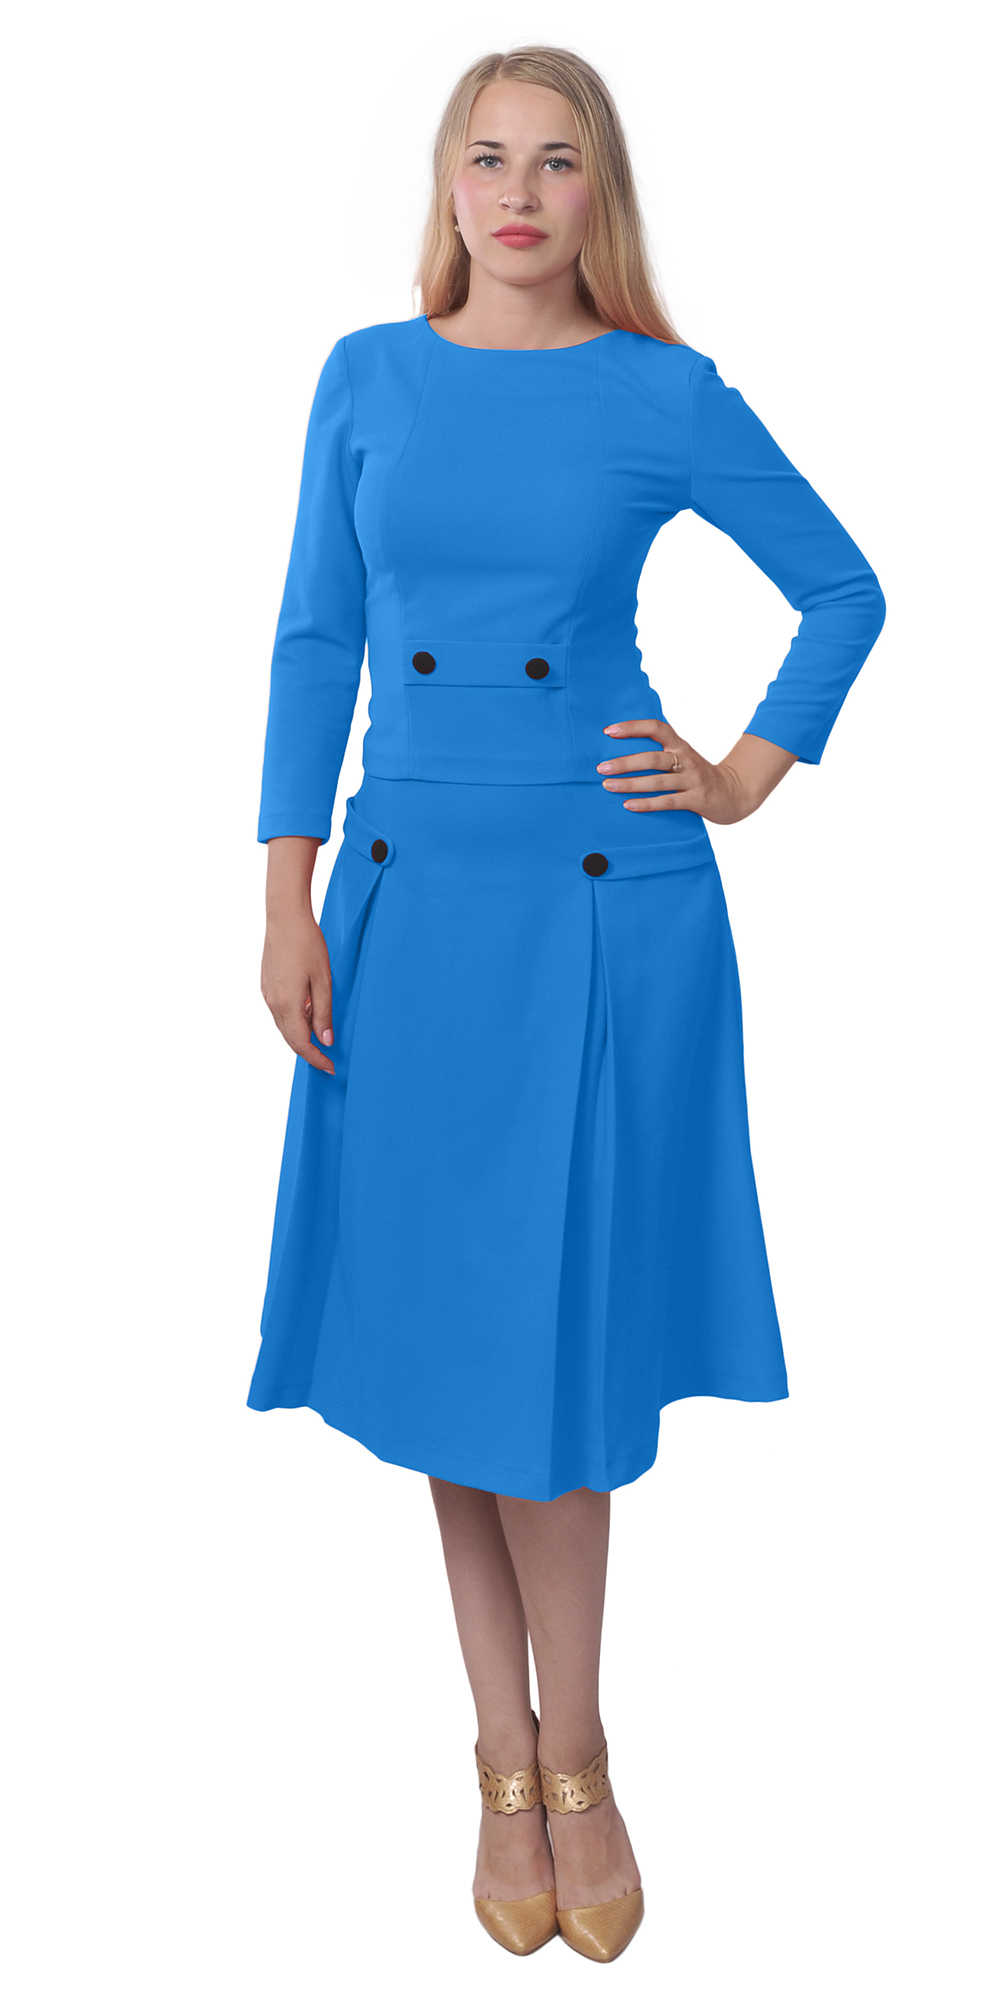 womens classic business church work vintage aline